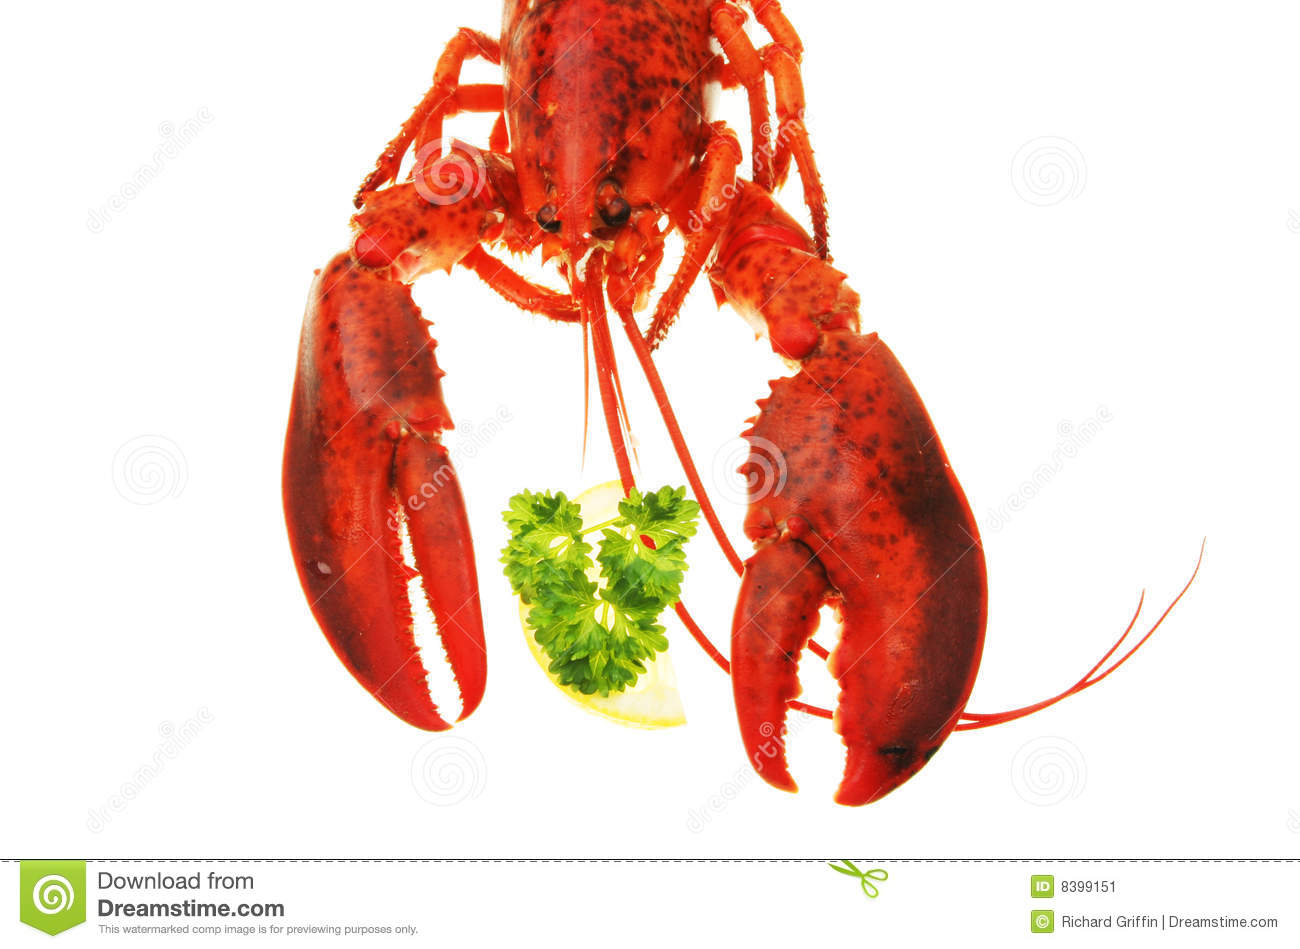 Lobster claws and head stock image. Image of garnish, cooked - 8399151